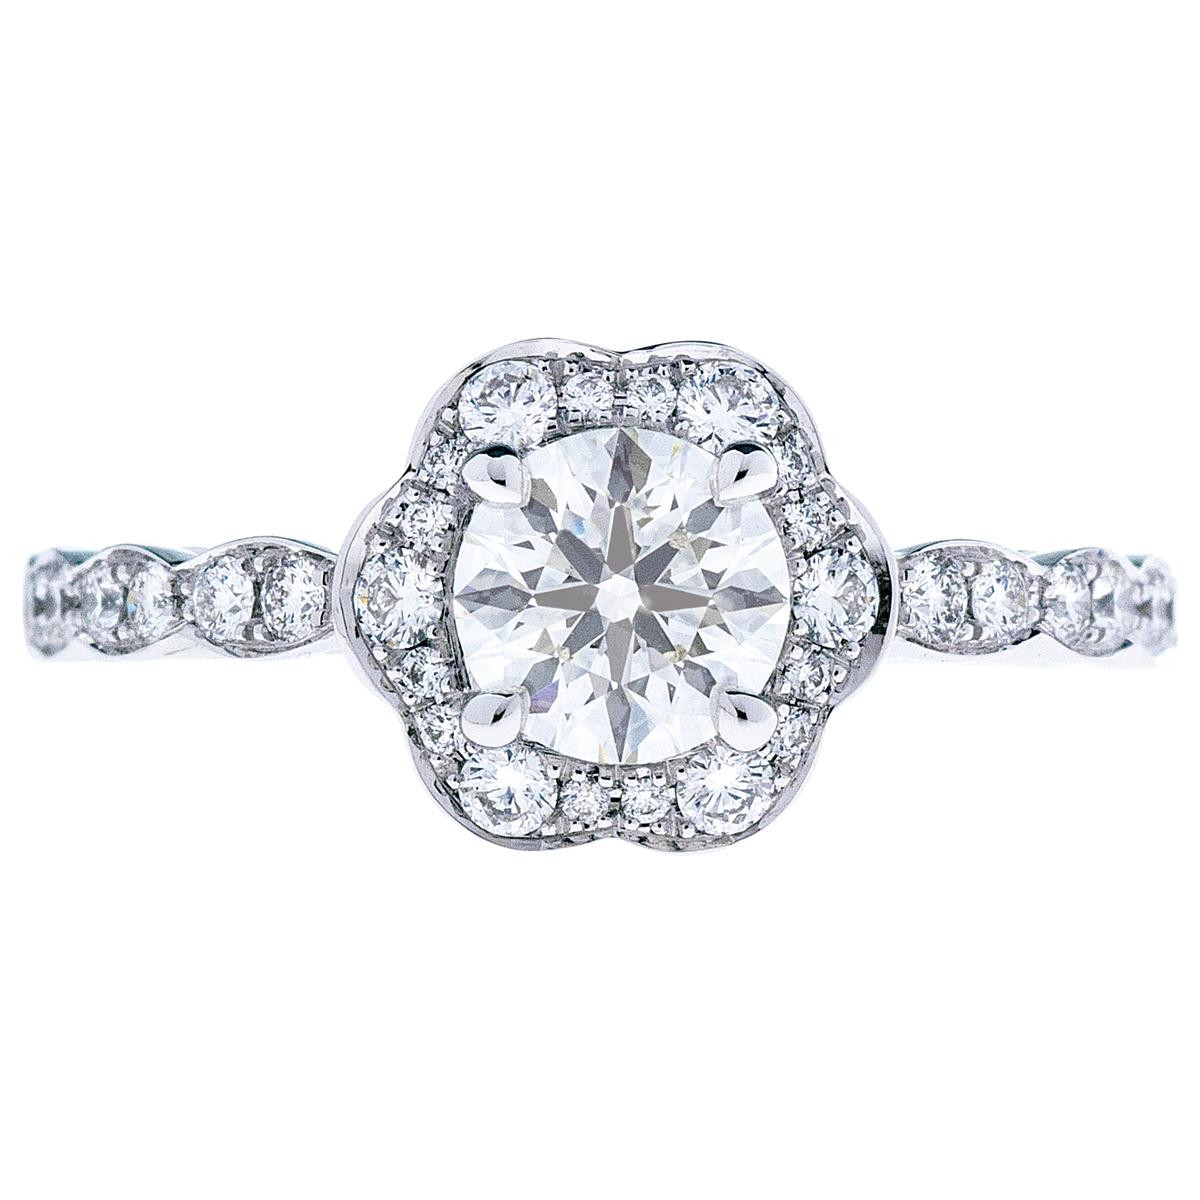 Hearts On Fire® Lorelei 1.02 Ct Diamond Ring